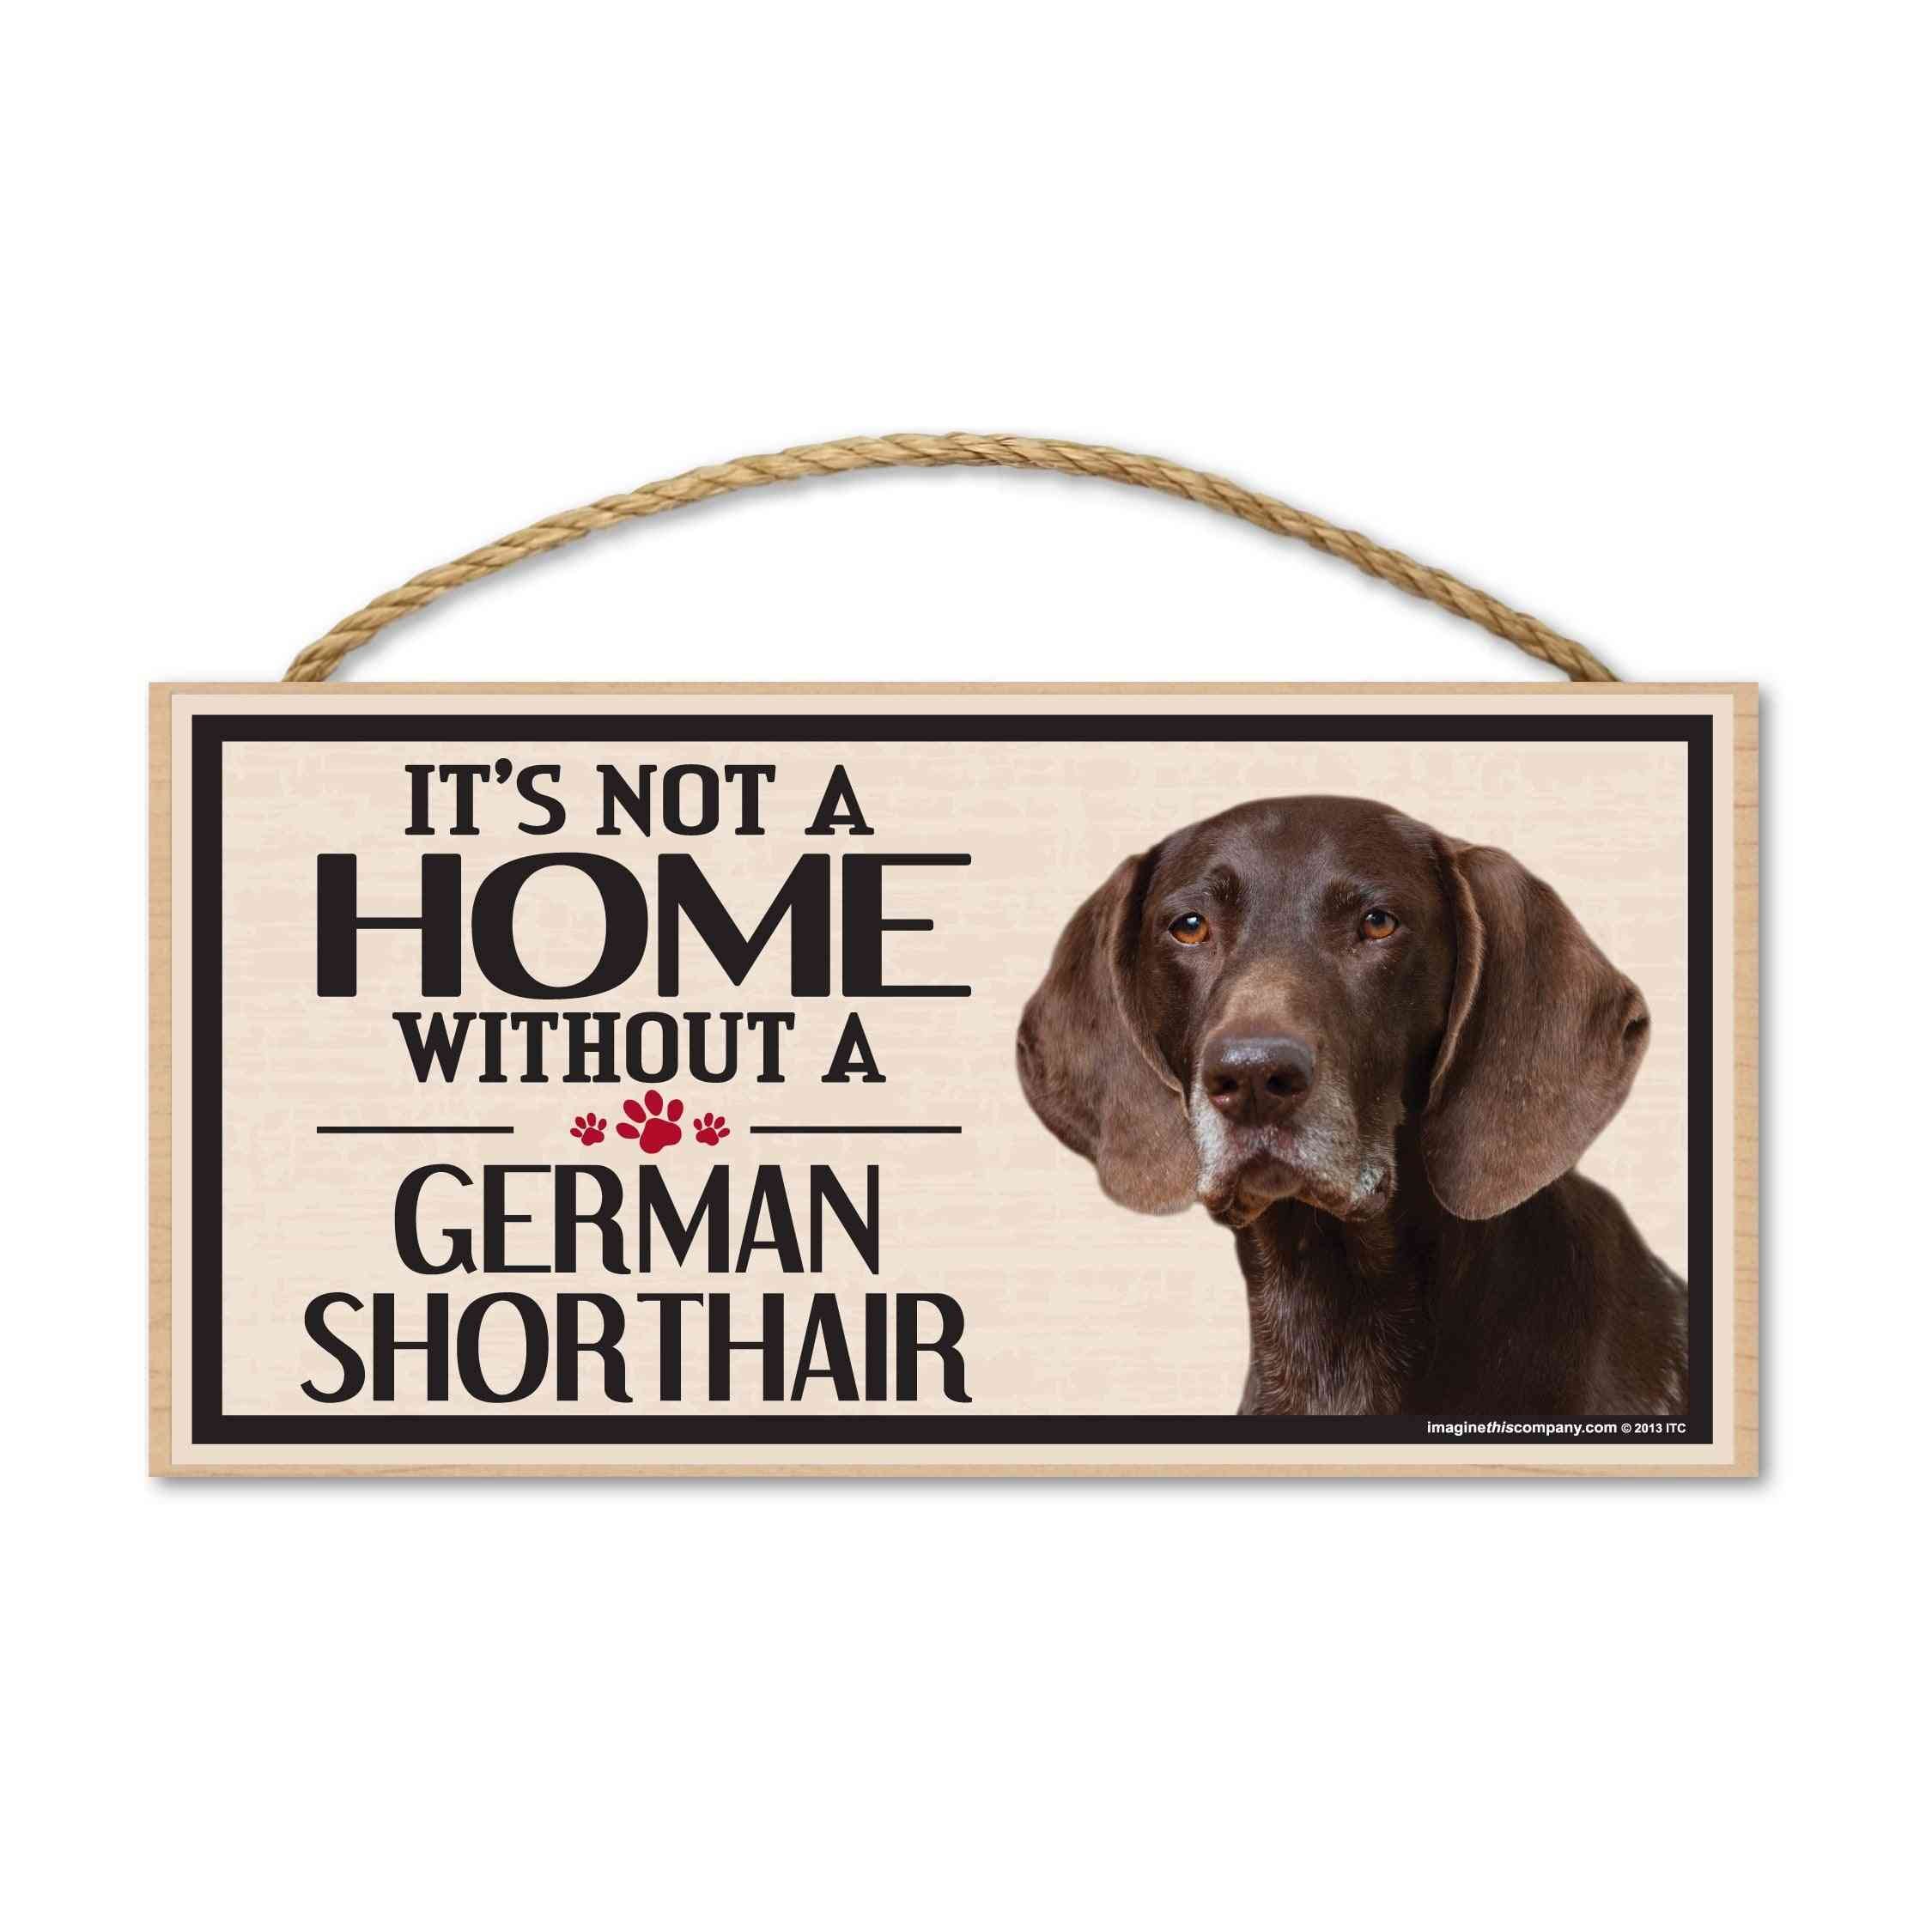 Sign, Wood, It's Not A Home Without A German Shorthair, 10